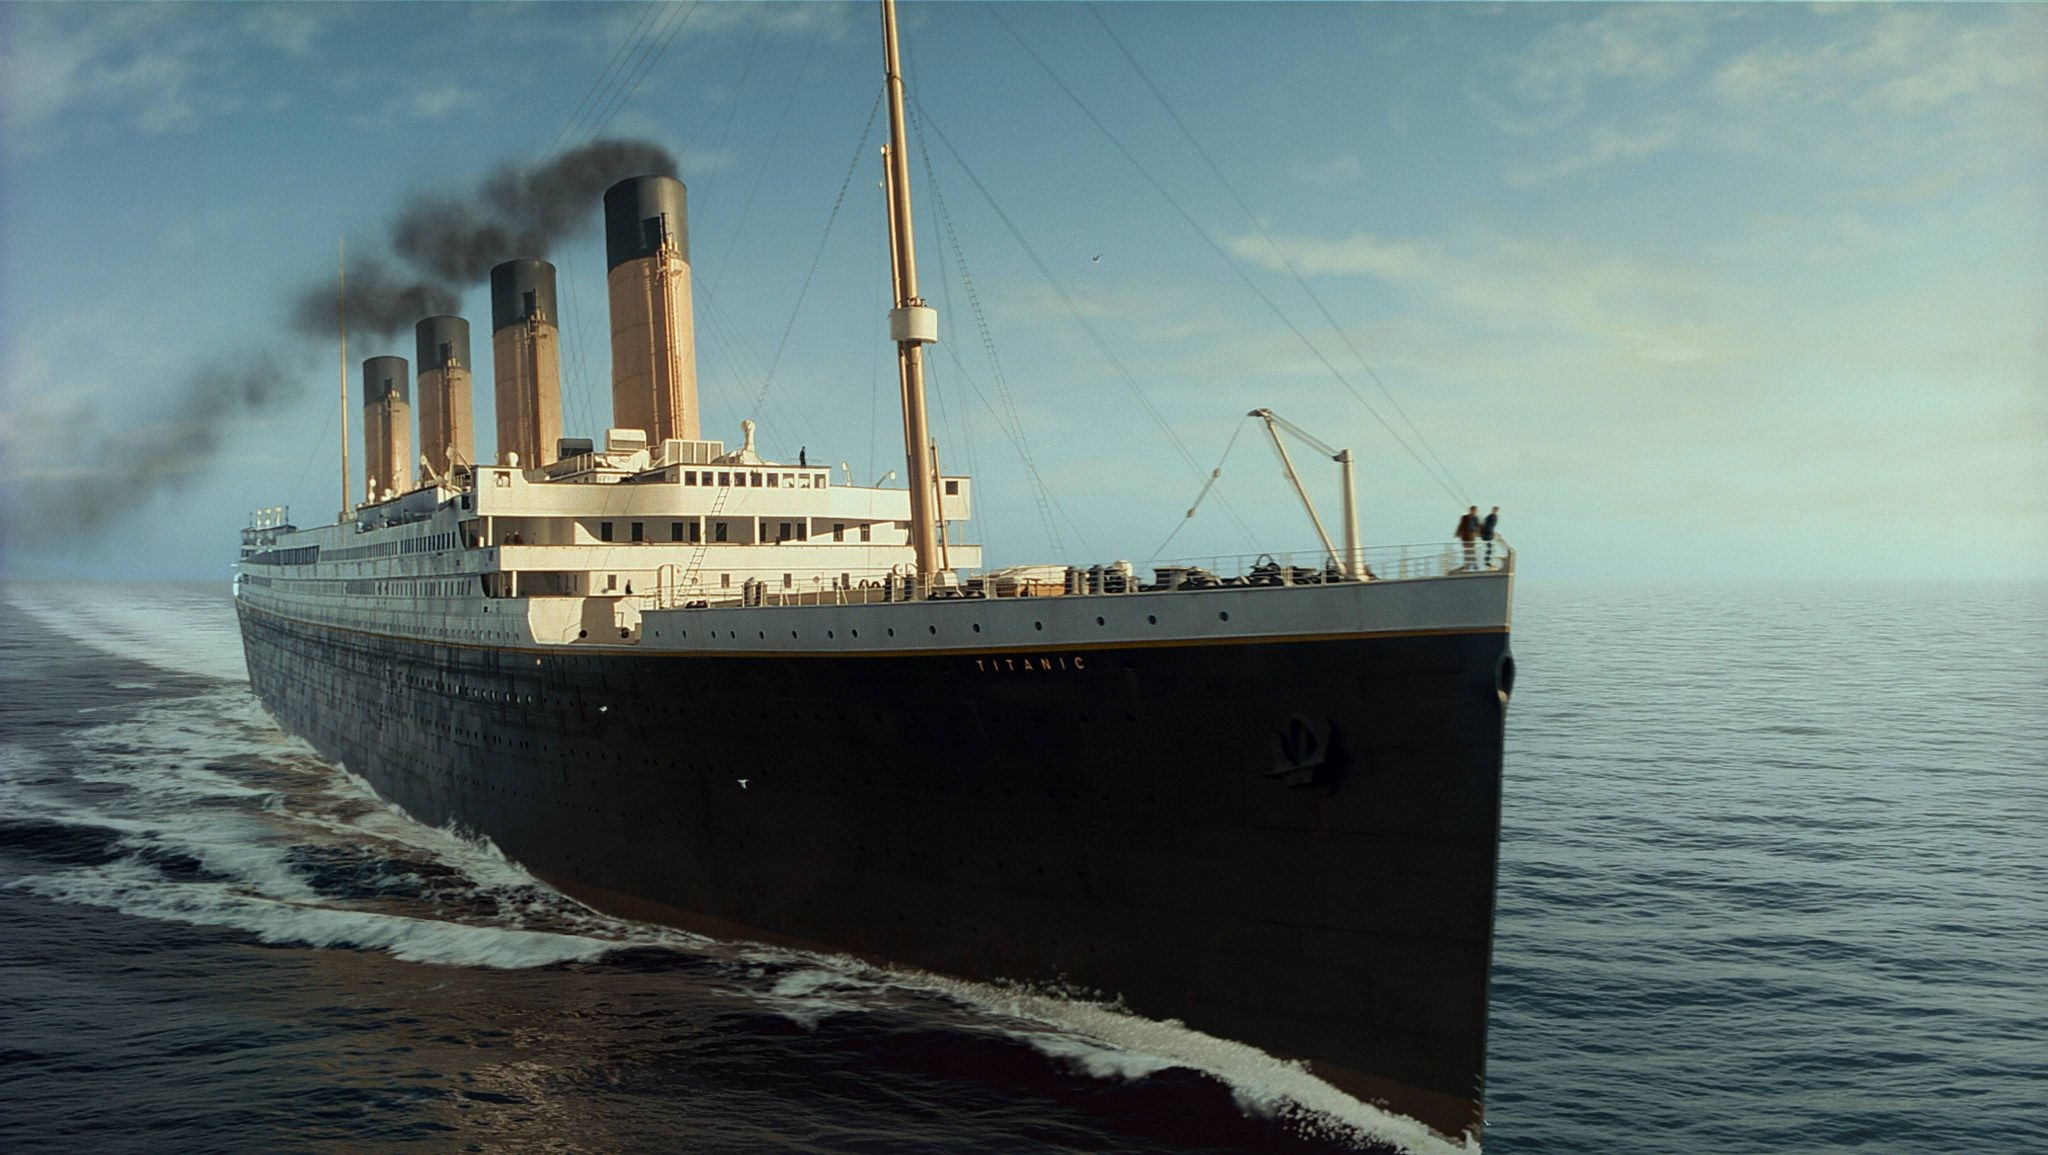 2048x1155 New Evidence Suggests Iceberg Was Not The Only Cause Of Titanic